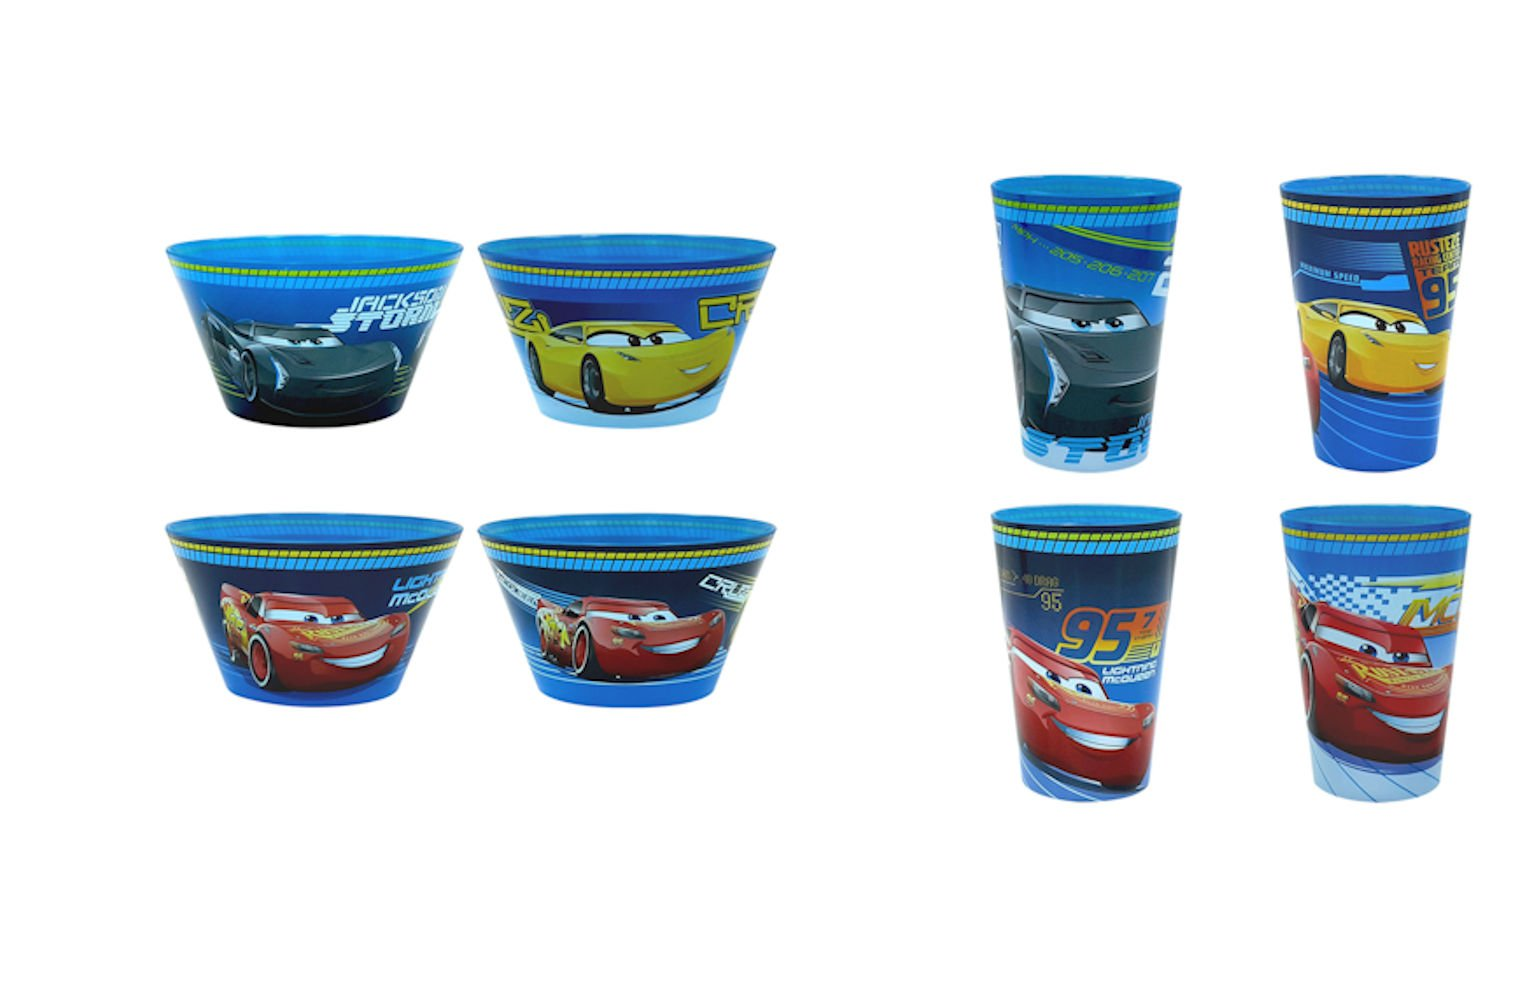 Disney's Cars 3 Lightening McQueen Melamine Snack Set Bowls and Cups